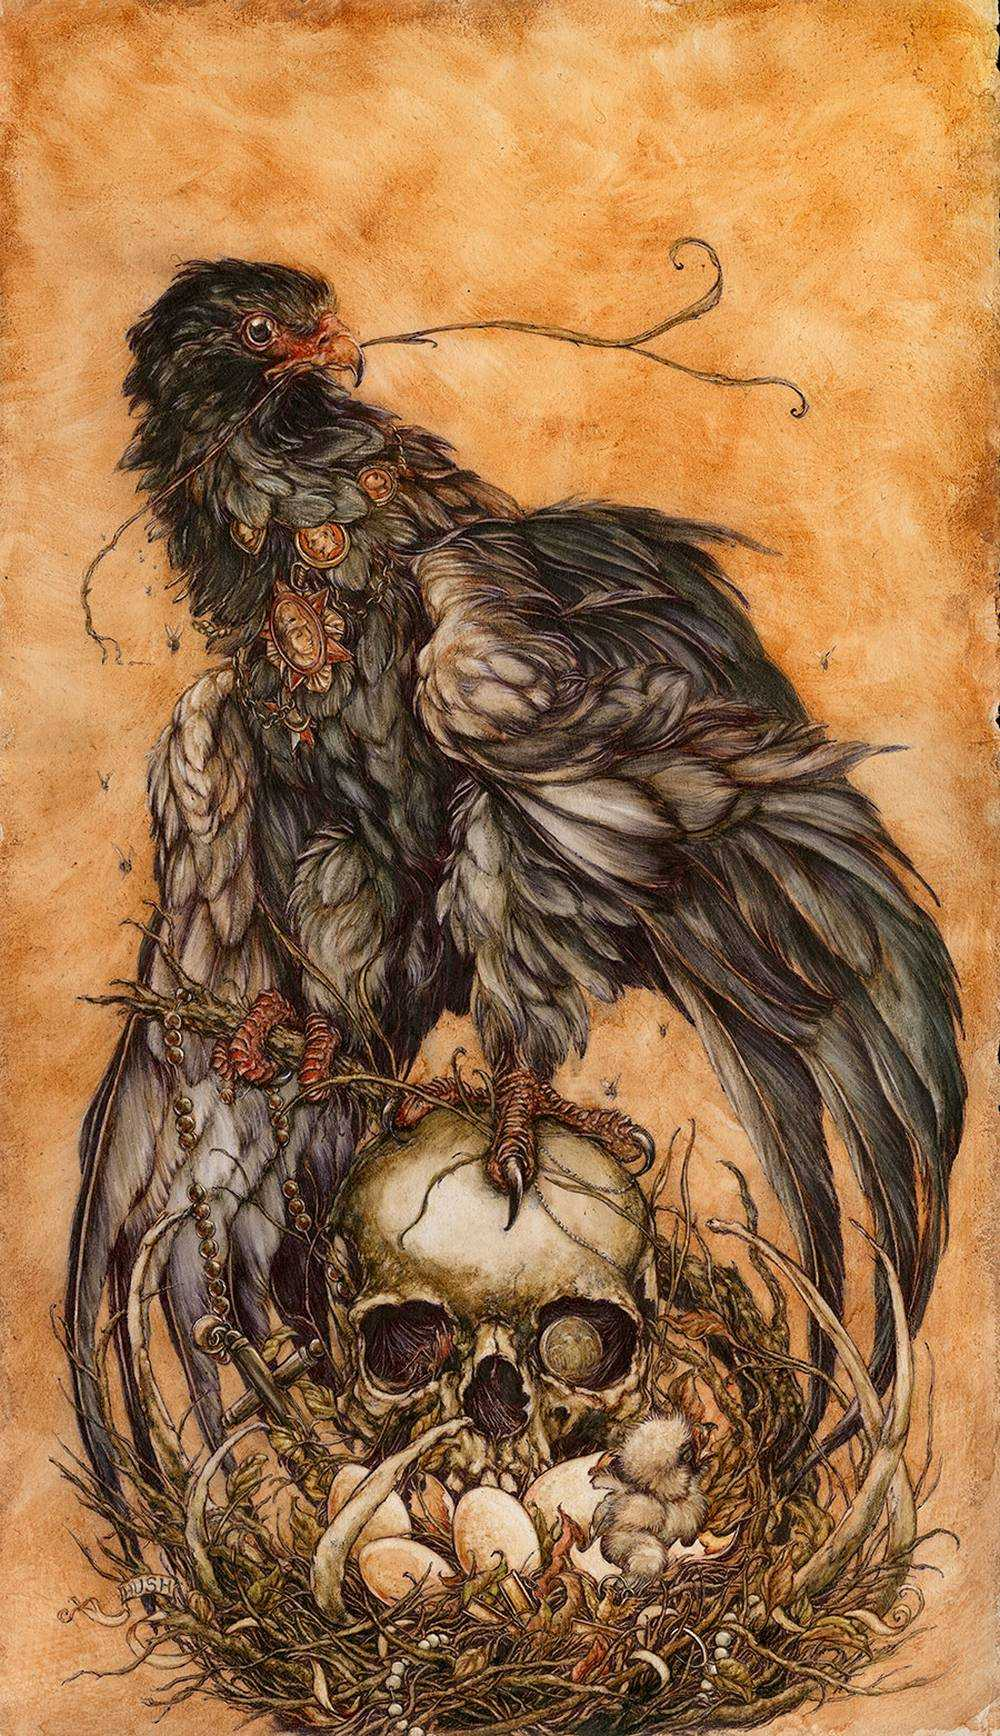 Jeremy hush - Illustrations 2568